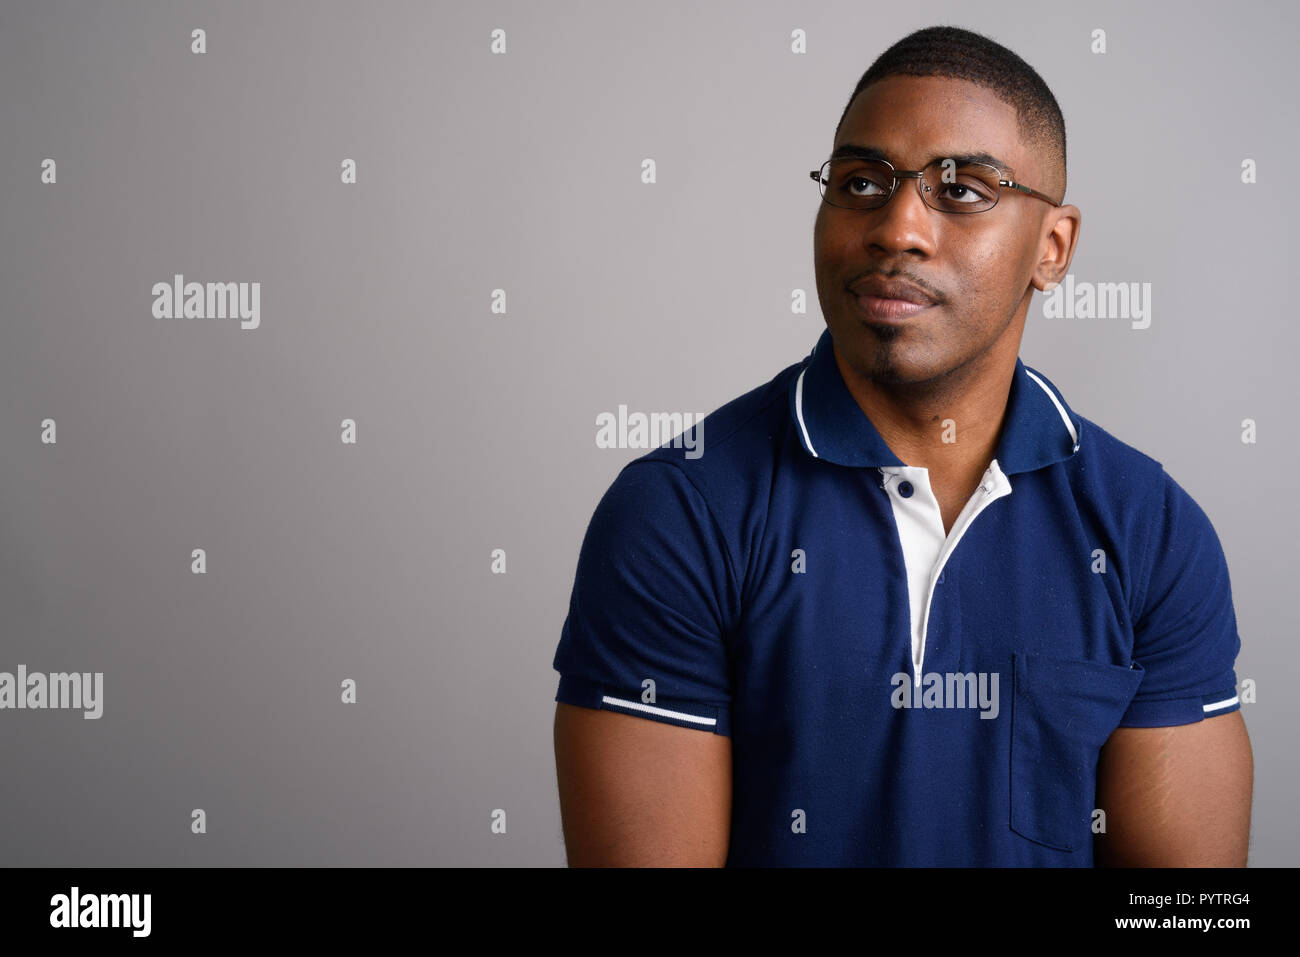 8c733b427 Young handsome African man wearing blue polo shirt against gray ...